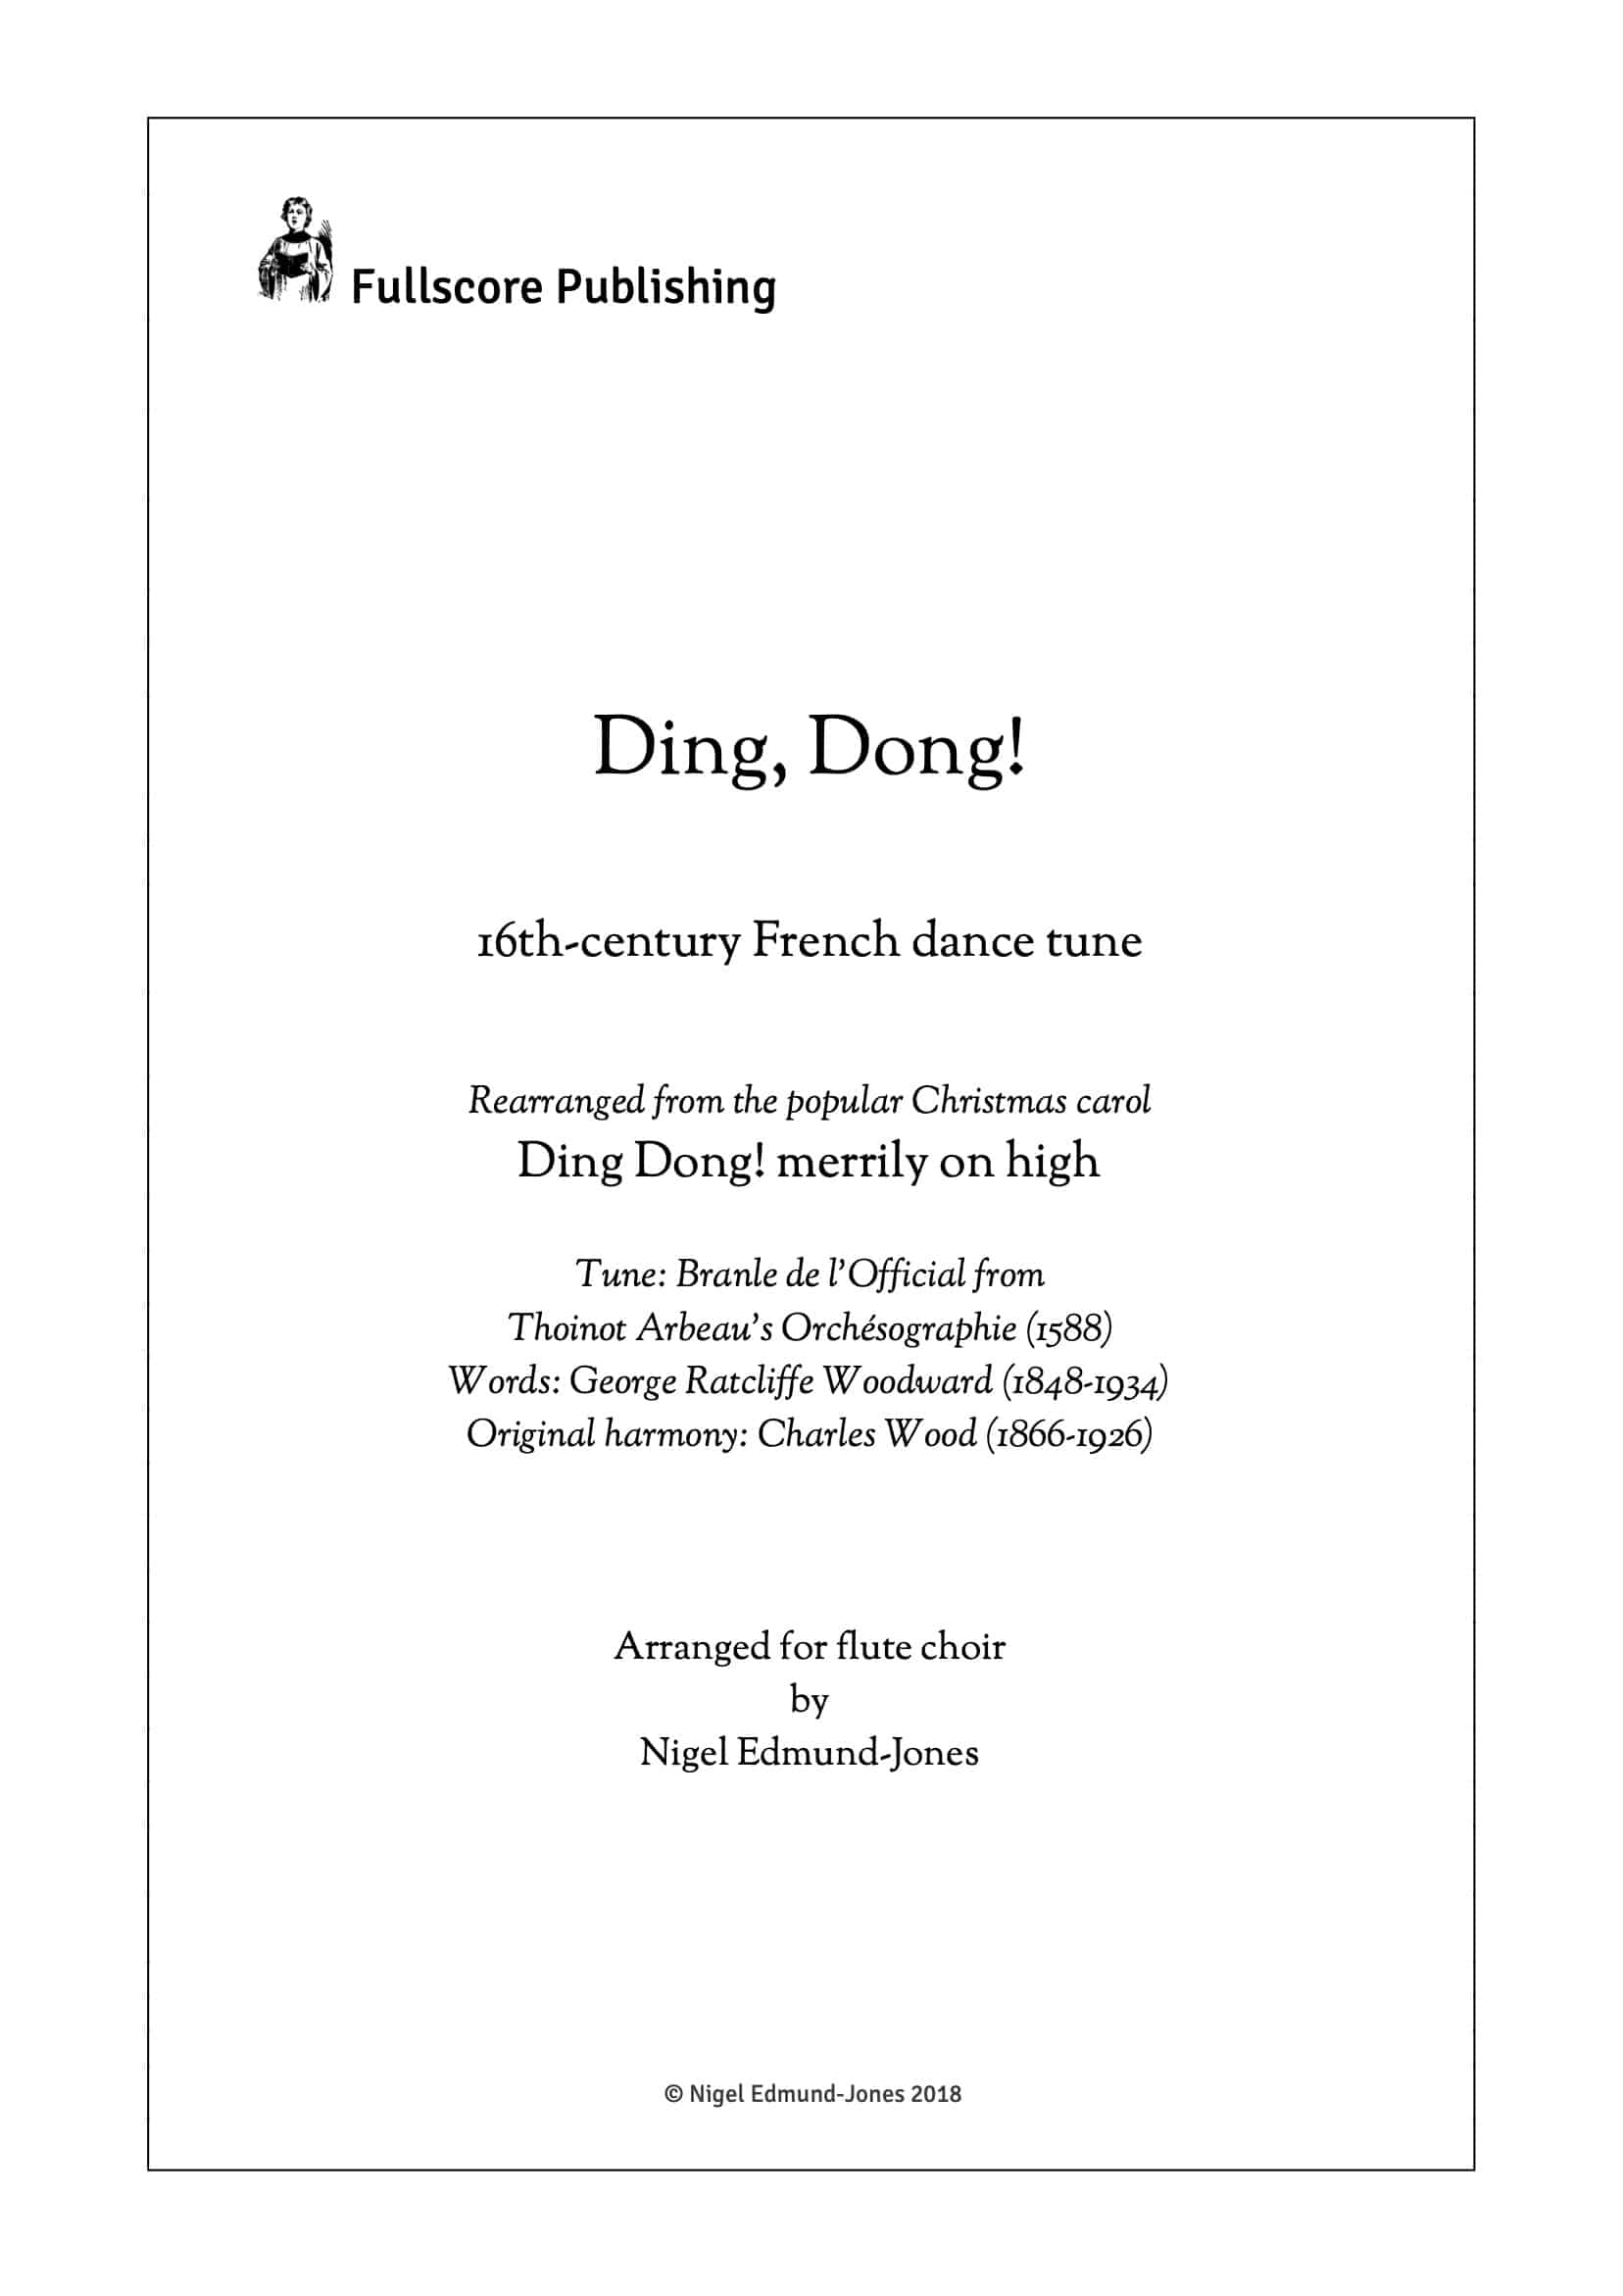 Ding Dong_for flute choir__Simply Flute-01